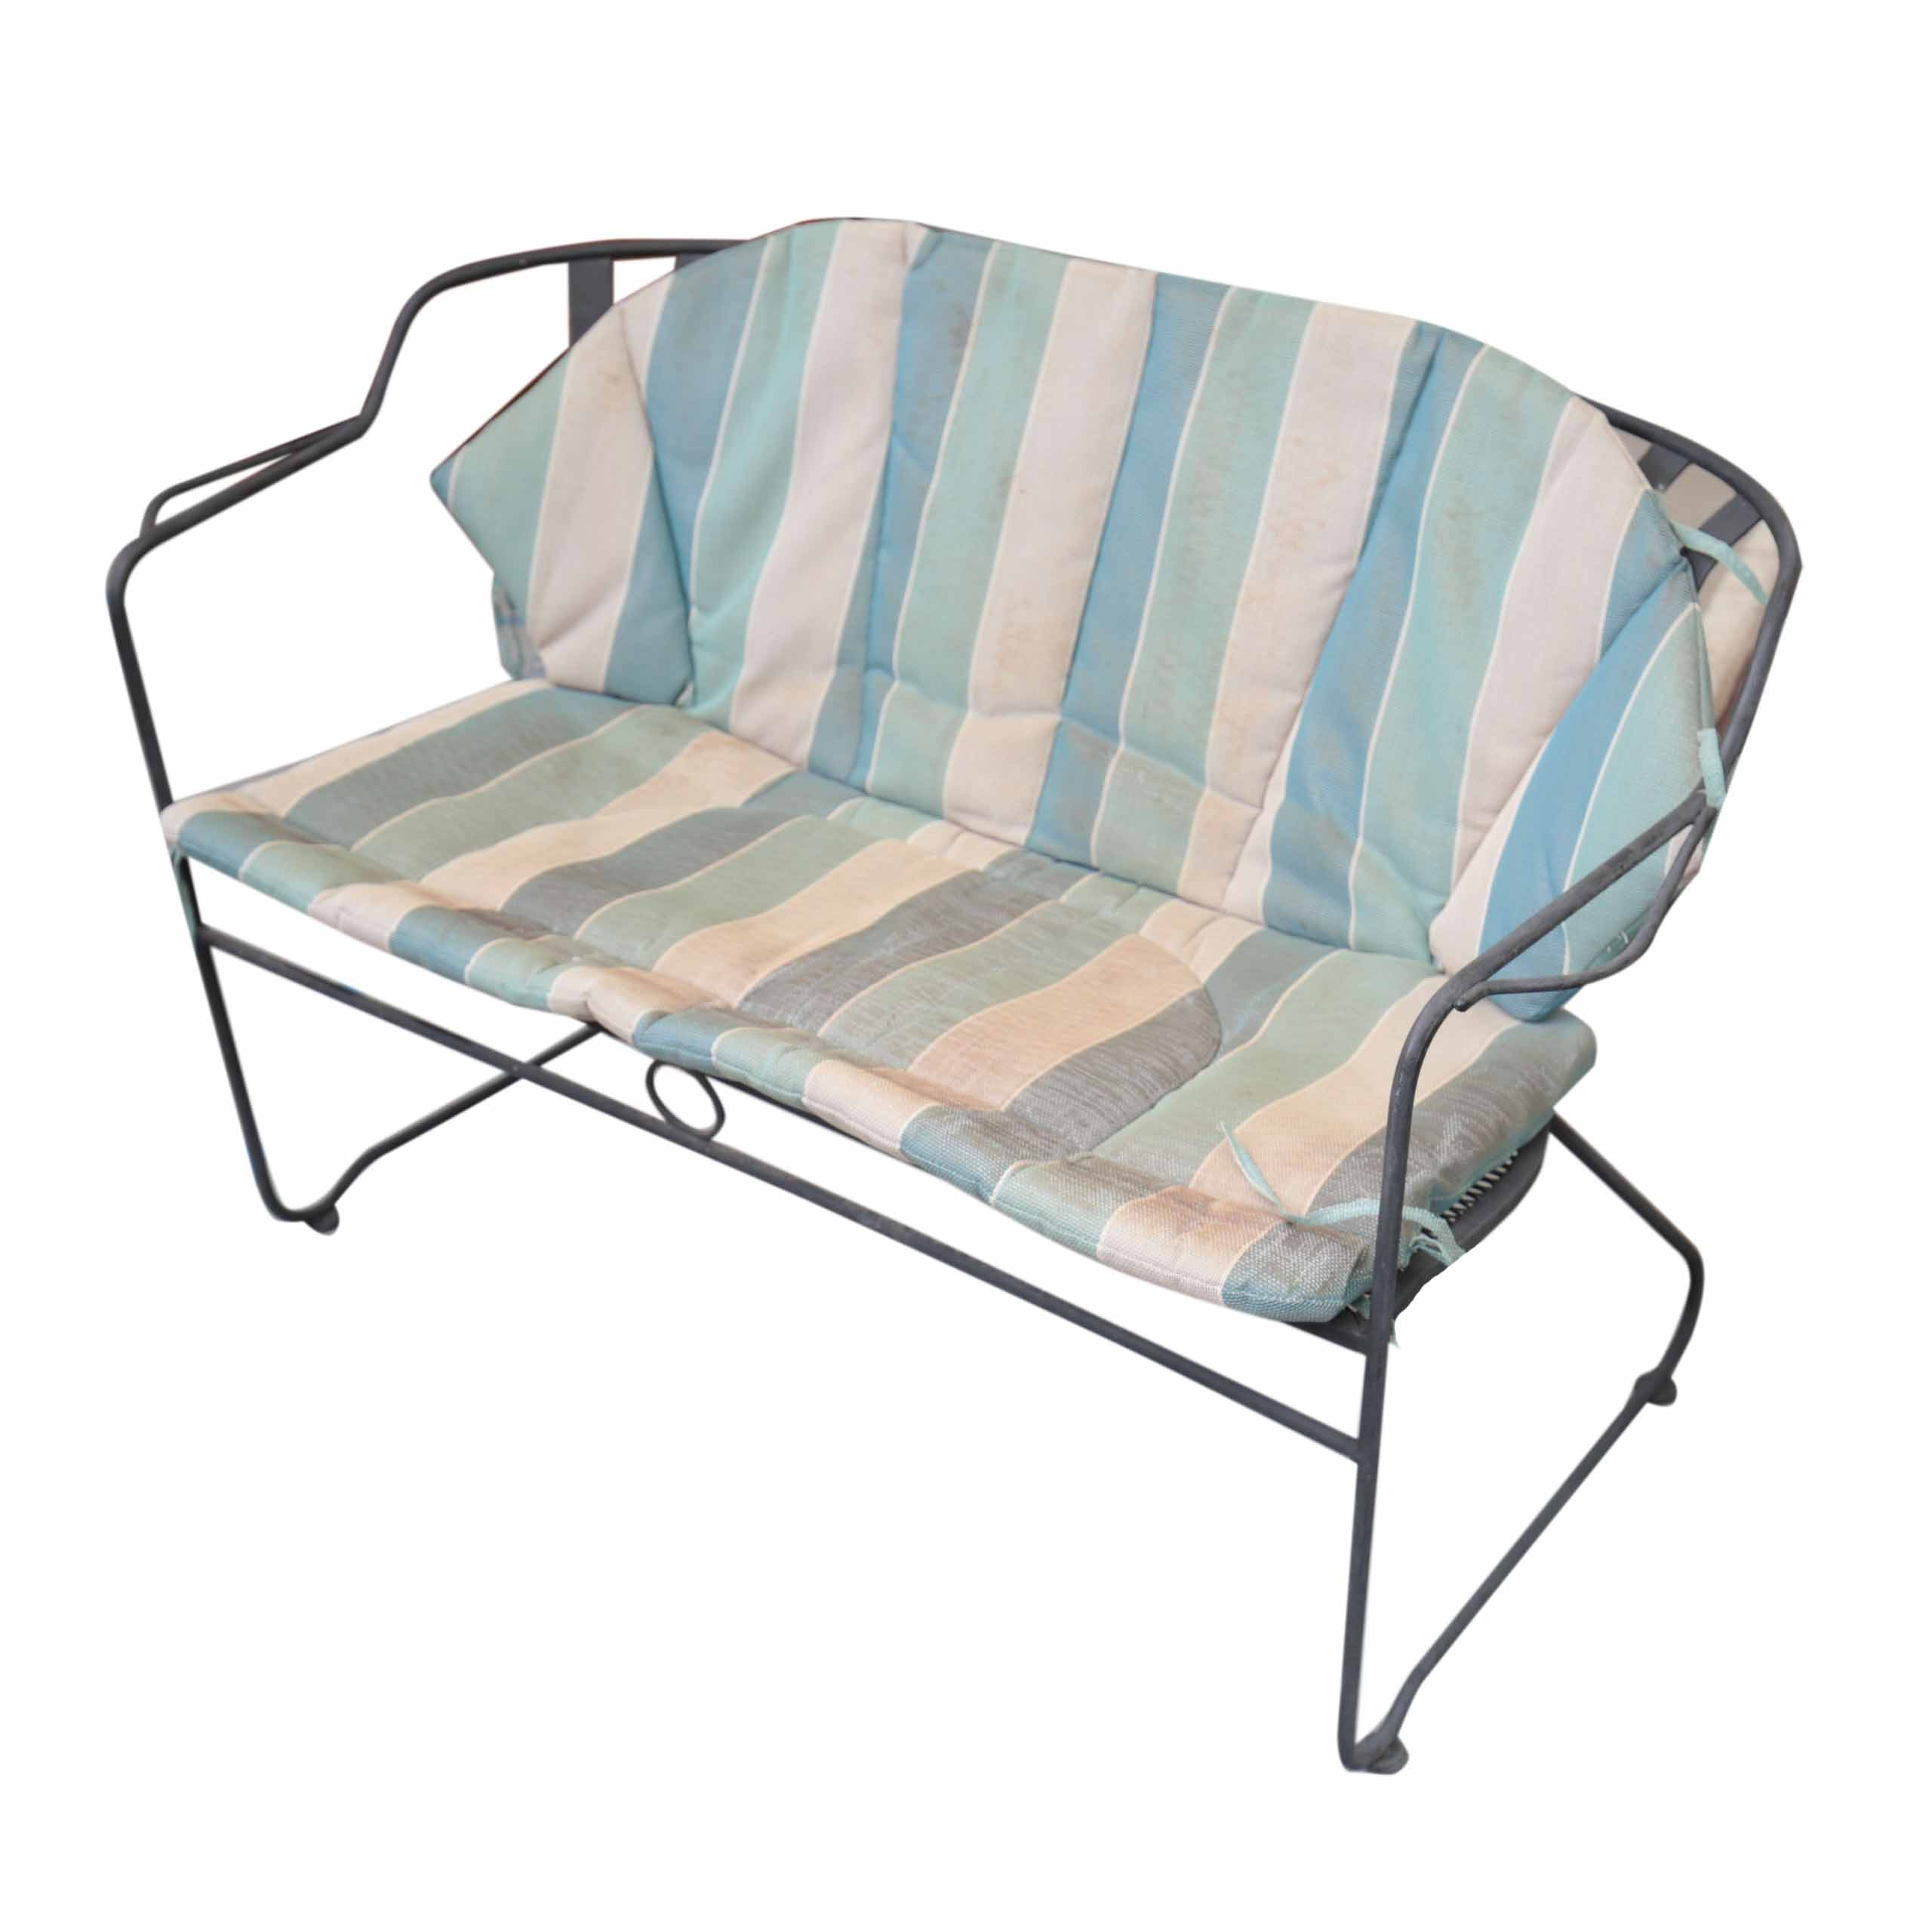 Vintage Metal Patio Settee With Cushion ...